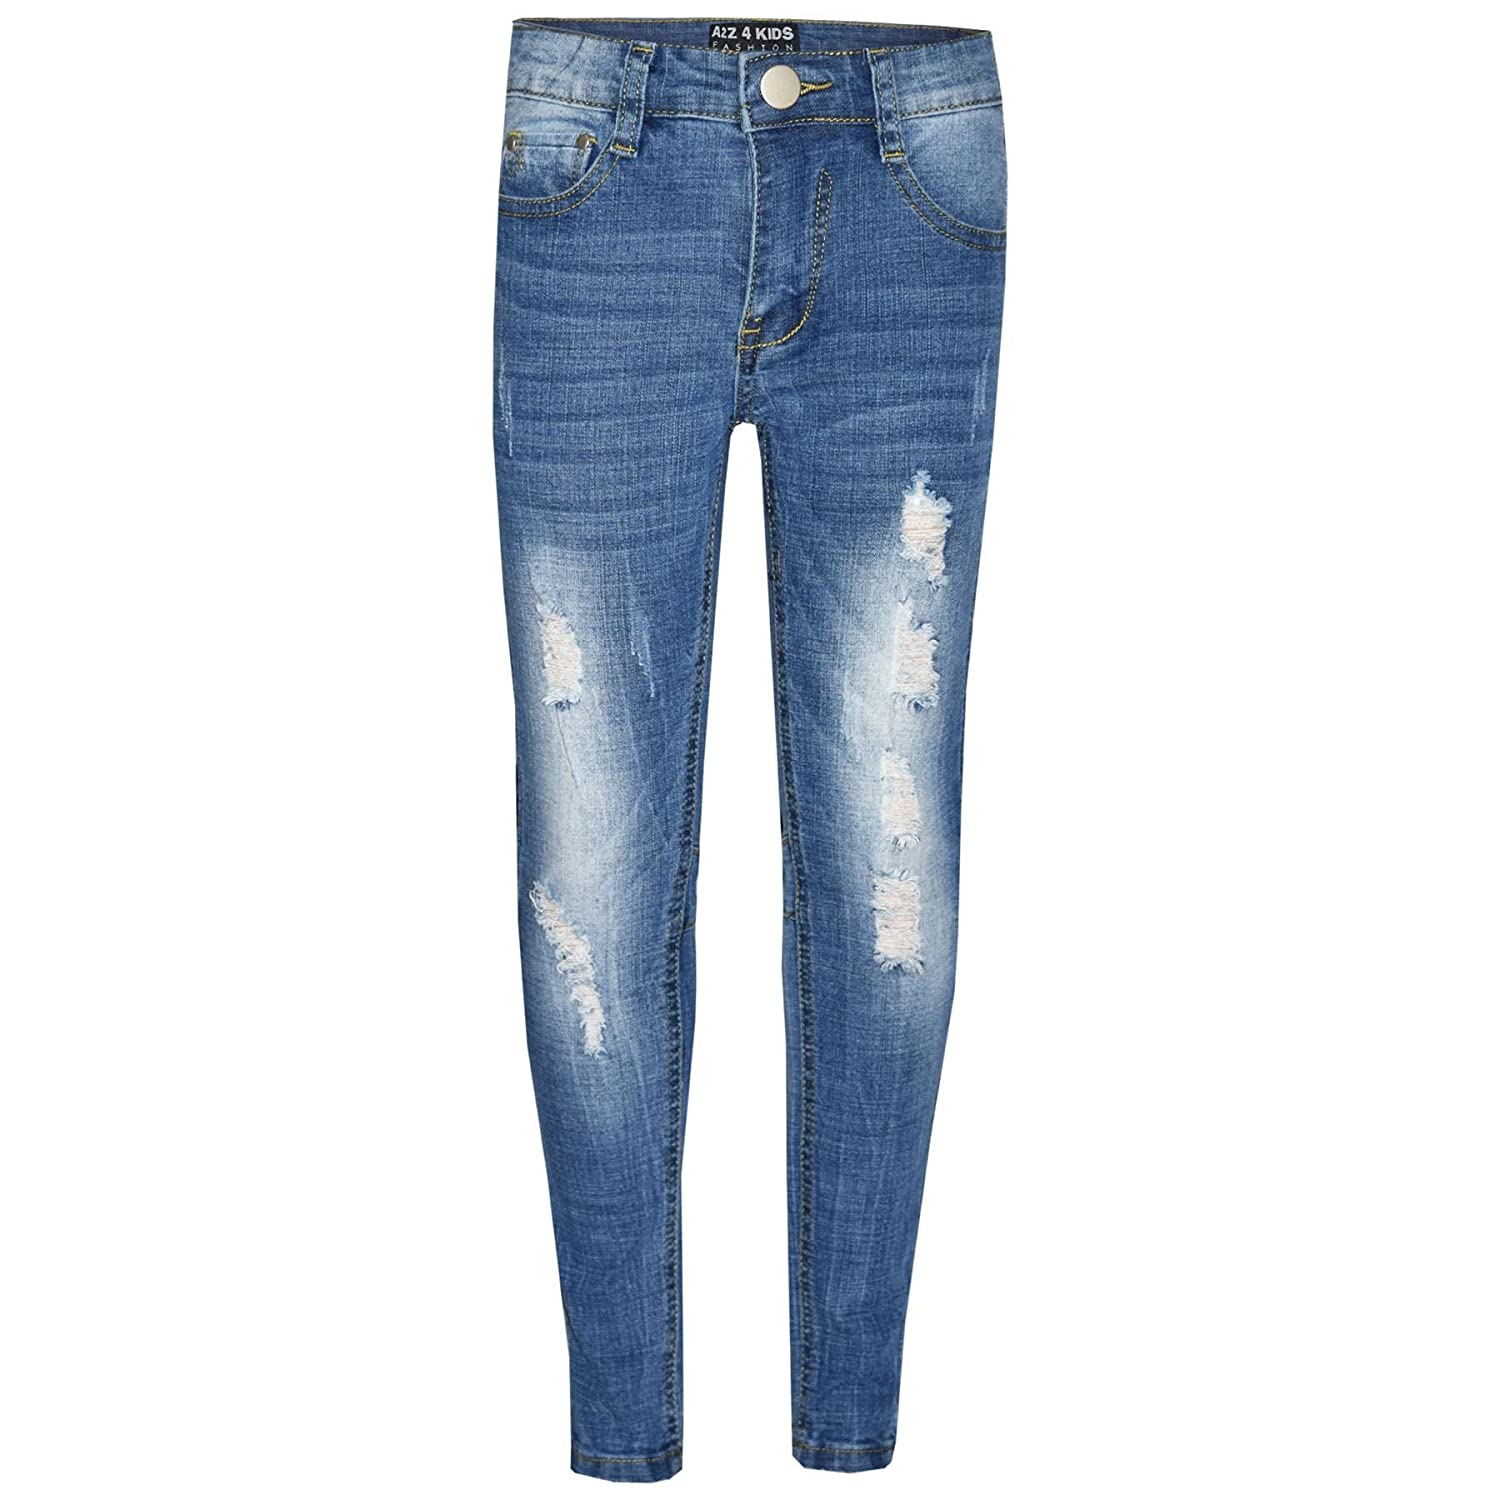 A2Z 4 Kids® Kids Boys Skinny Jeans Designer's Denim Ripped Stretchy Pants Fashion Trousers New Age 3 4 5 6 7 8 9 10 11 12 13 Years